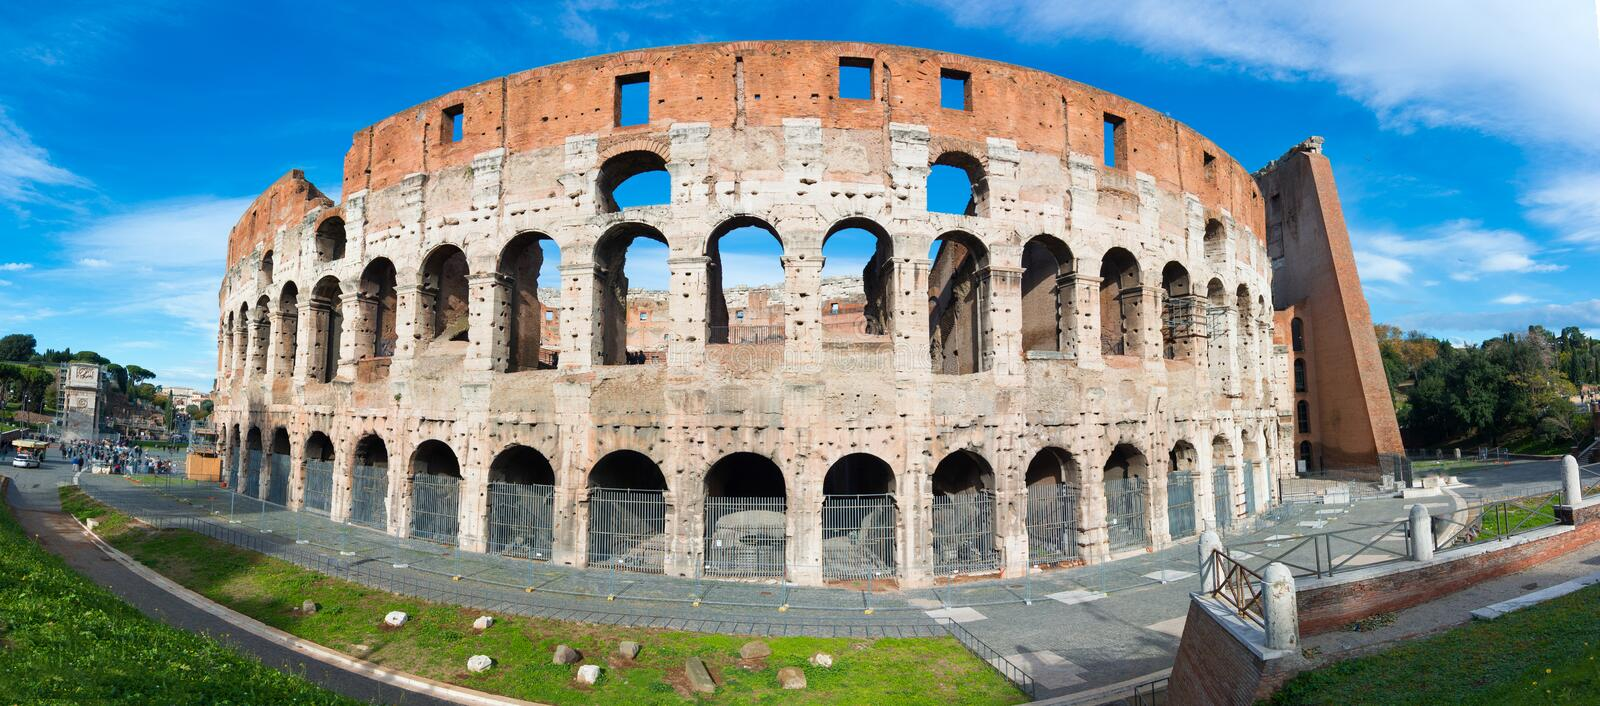 Download Colosseum Or Coliseum, The Flavian Amphitheatre Stock Image - Image: 38166111